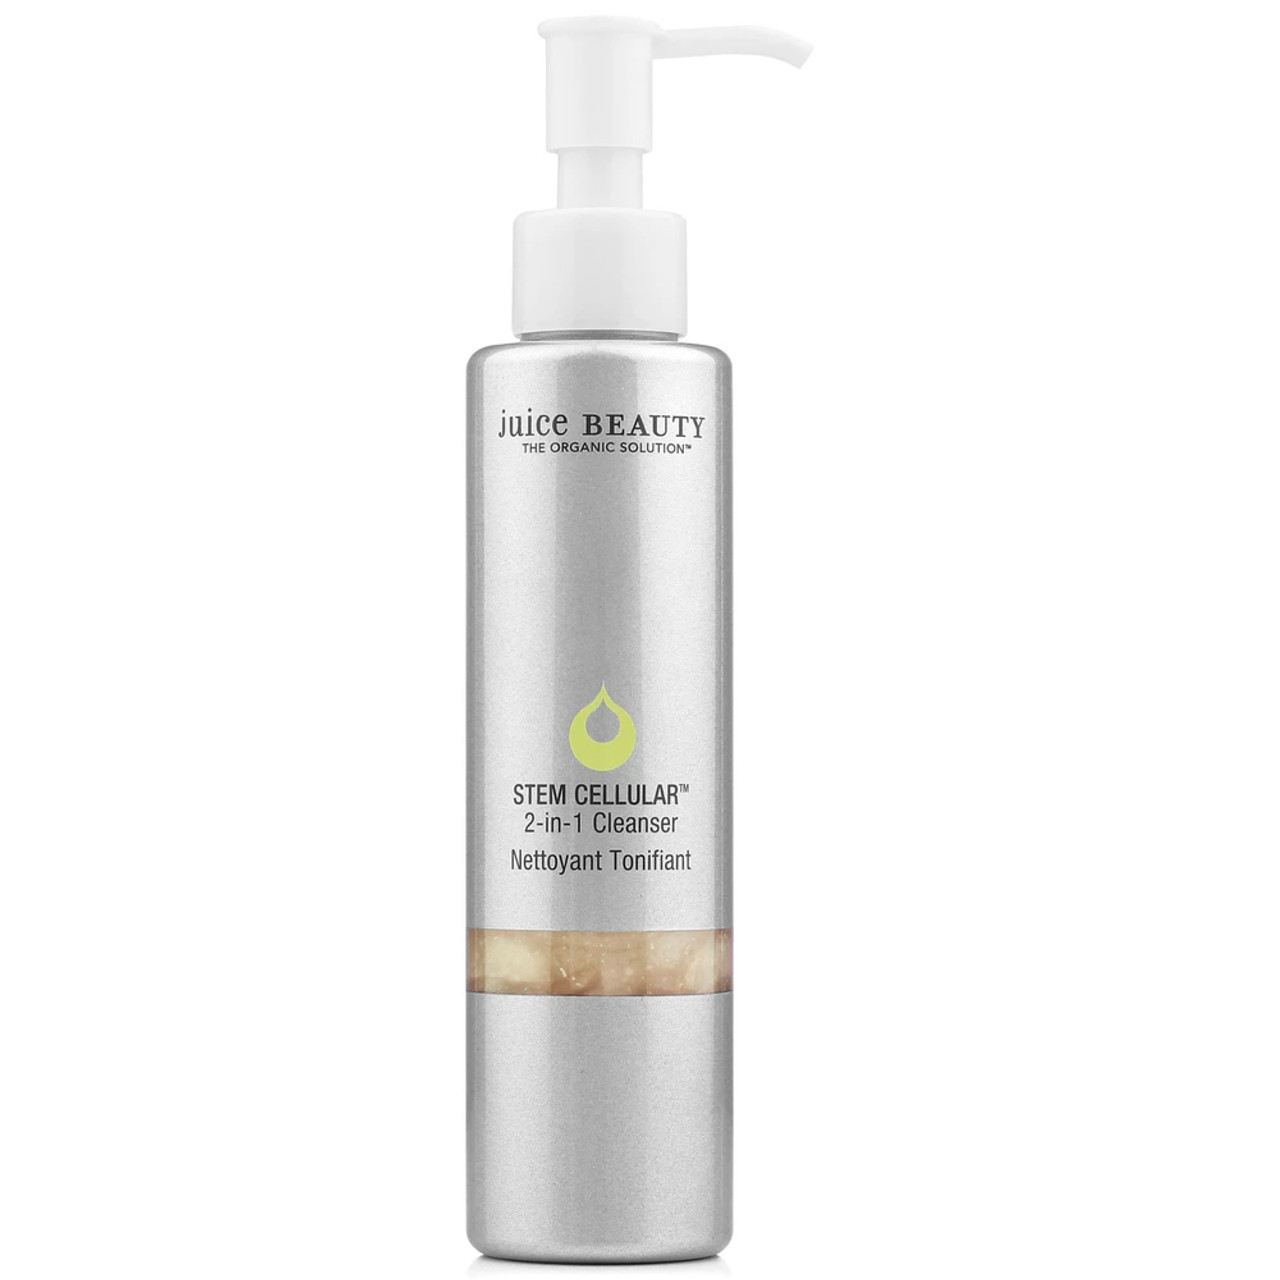 Juice Beauty Cellular 2-in-1 Cleanser